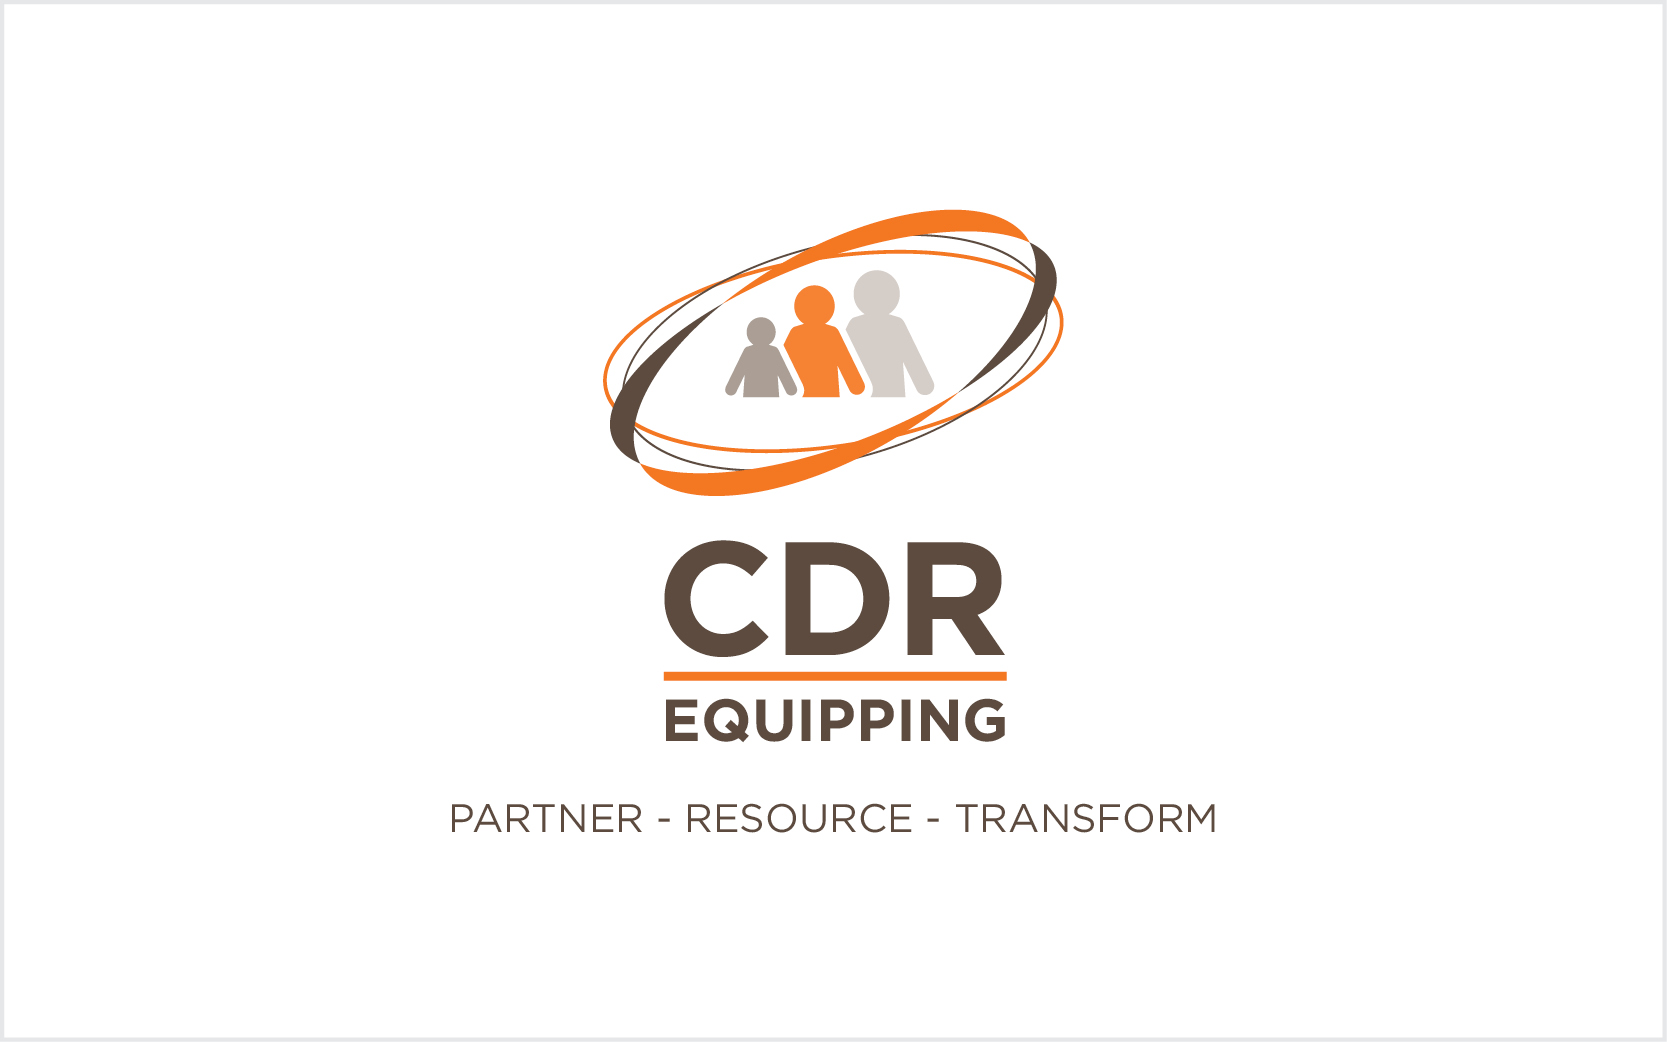 CDR Equipping Logo